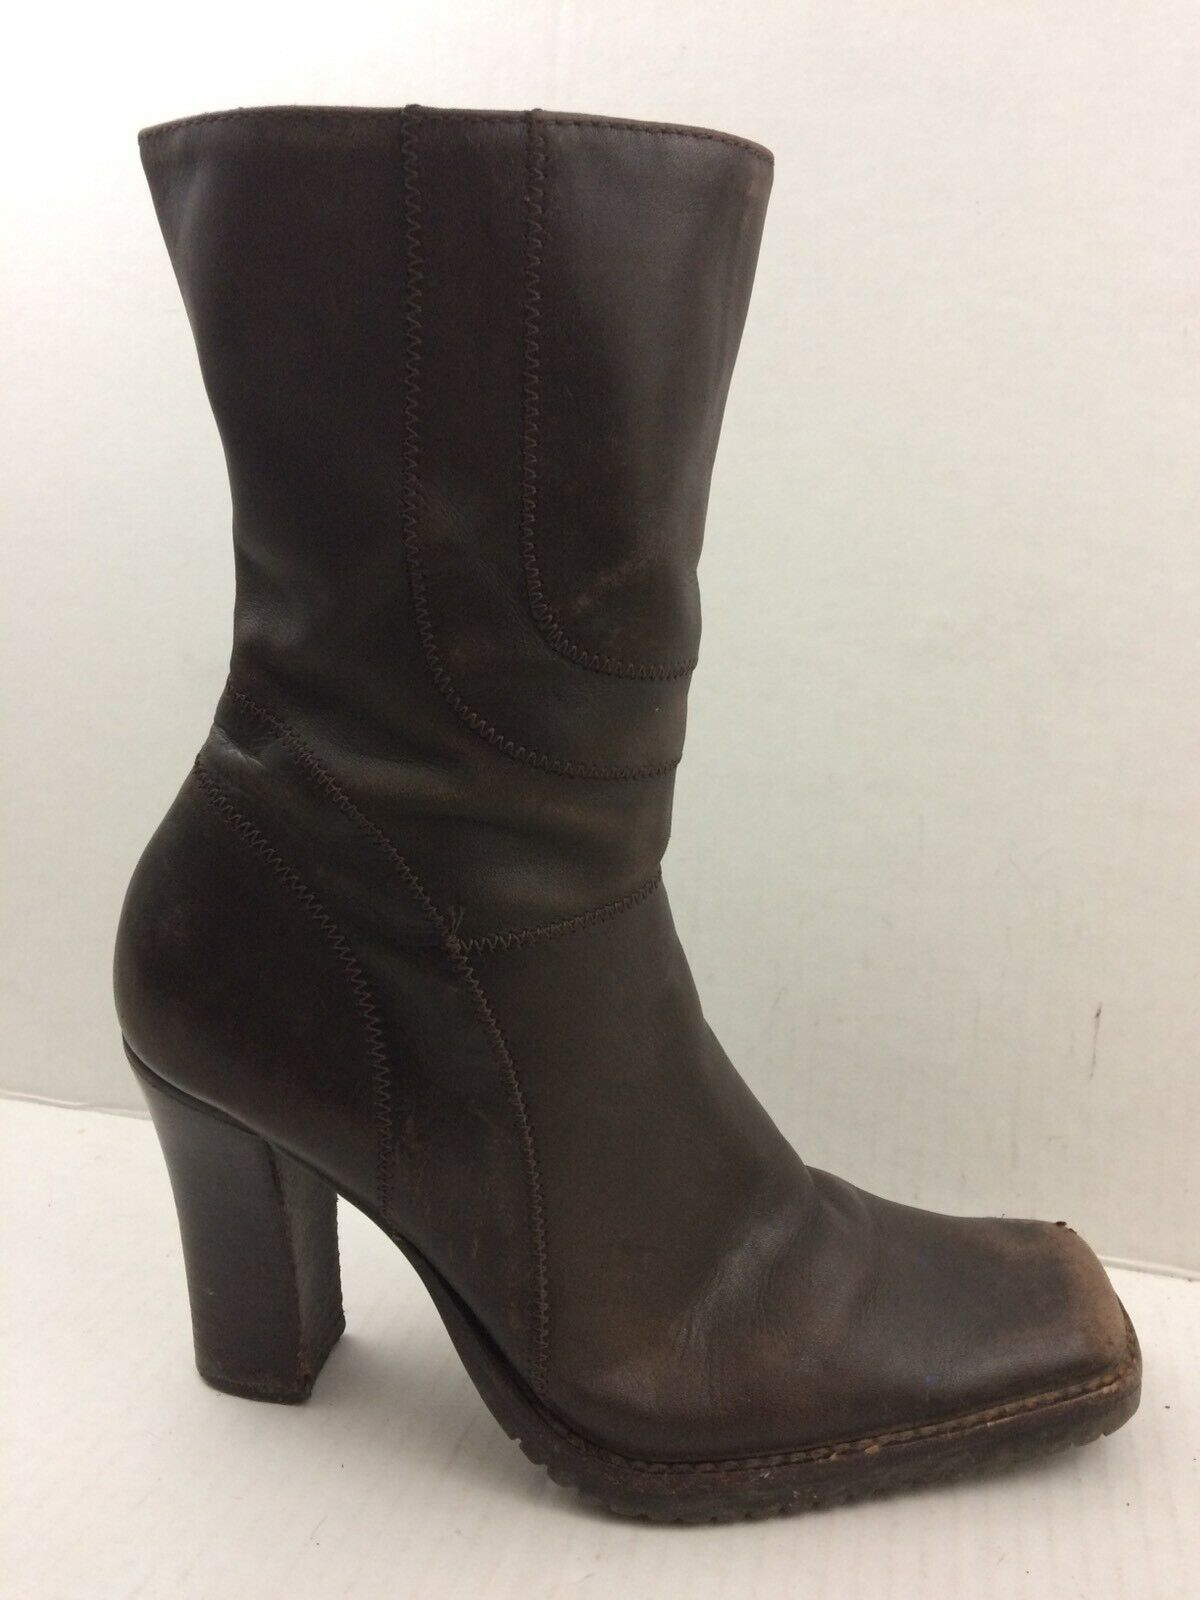 Steve Madden Press Womens 7 M Brown Leather Ankle Boots Zip High Heel Square Toe